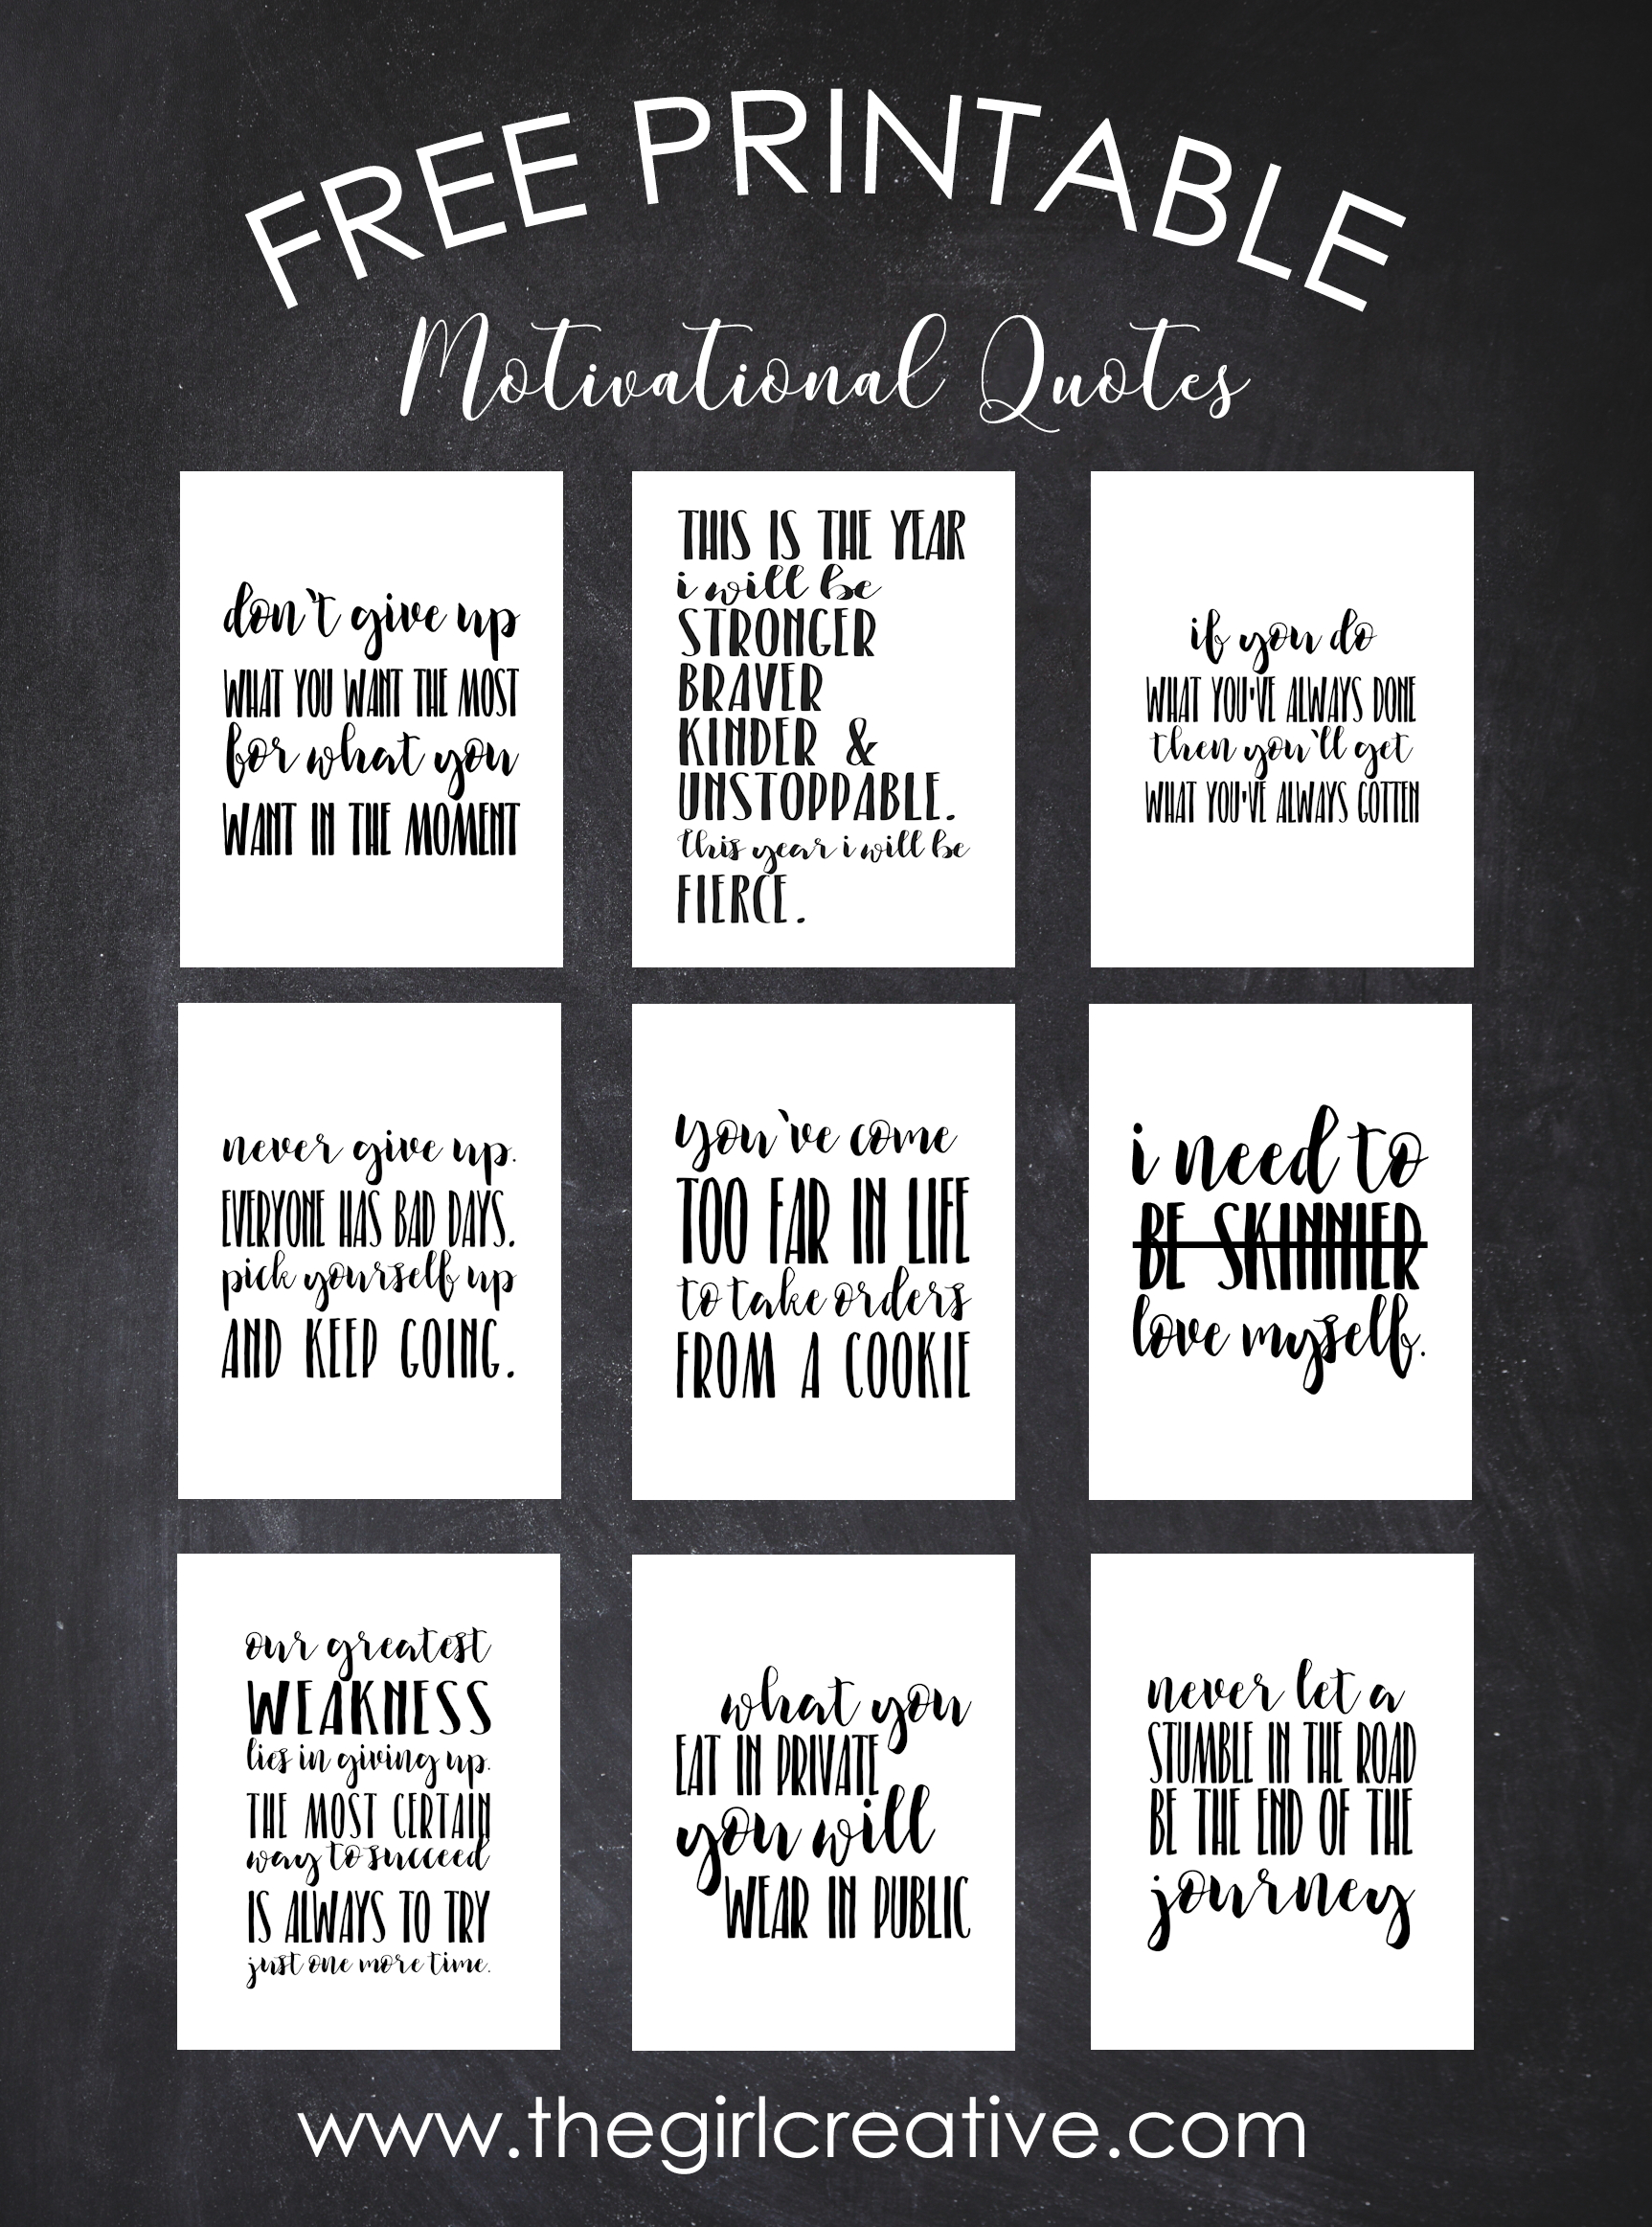 Free Printable Motivational Quotes - The Girl Creative - Free Printable Testing Signs